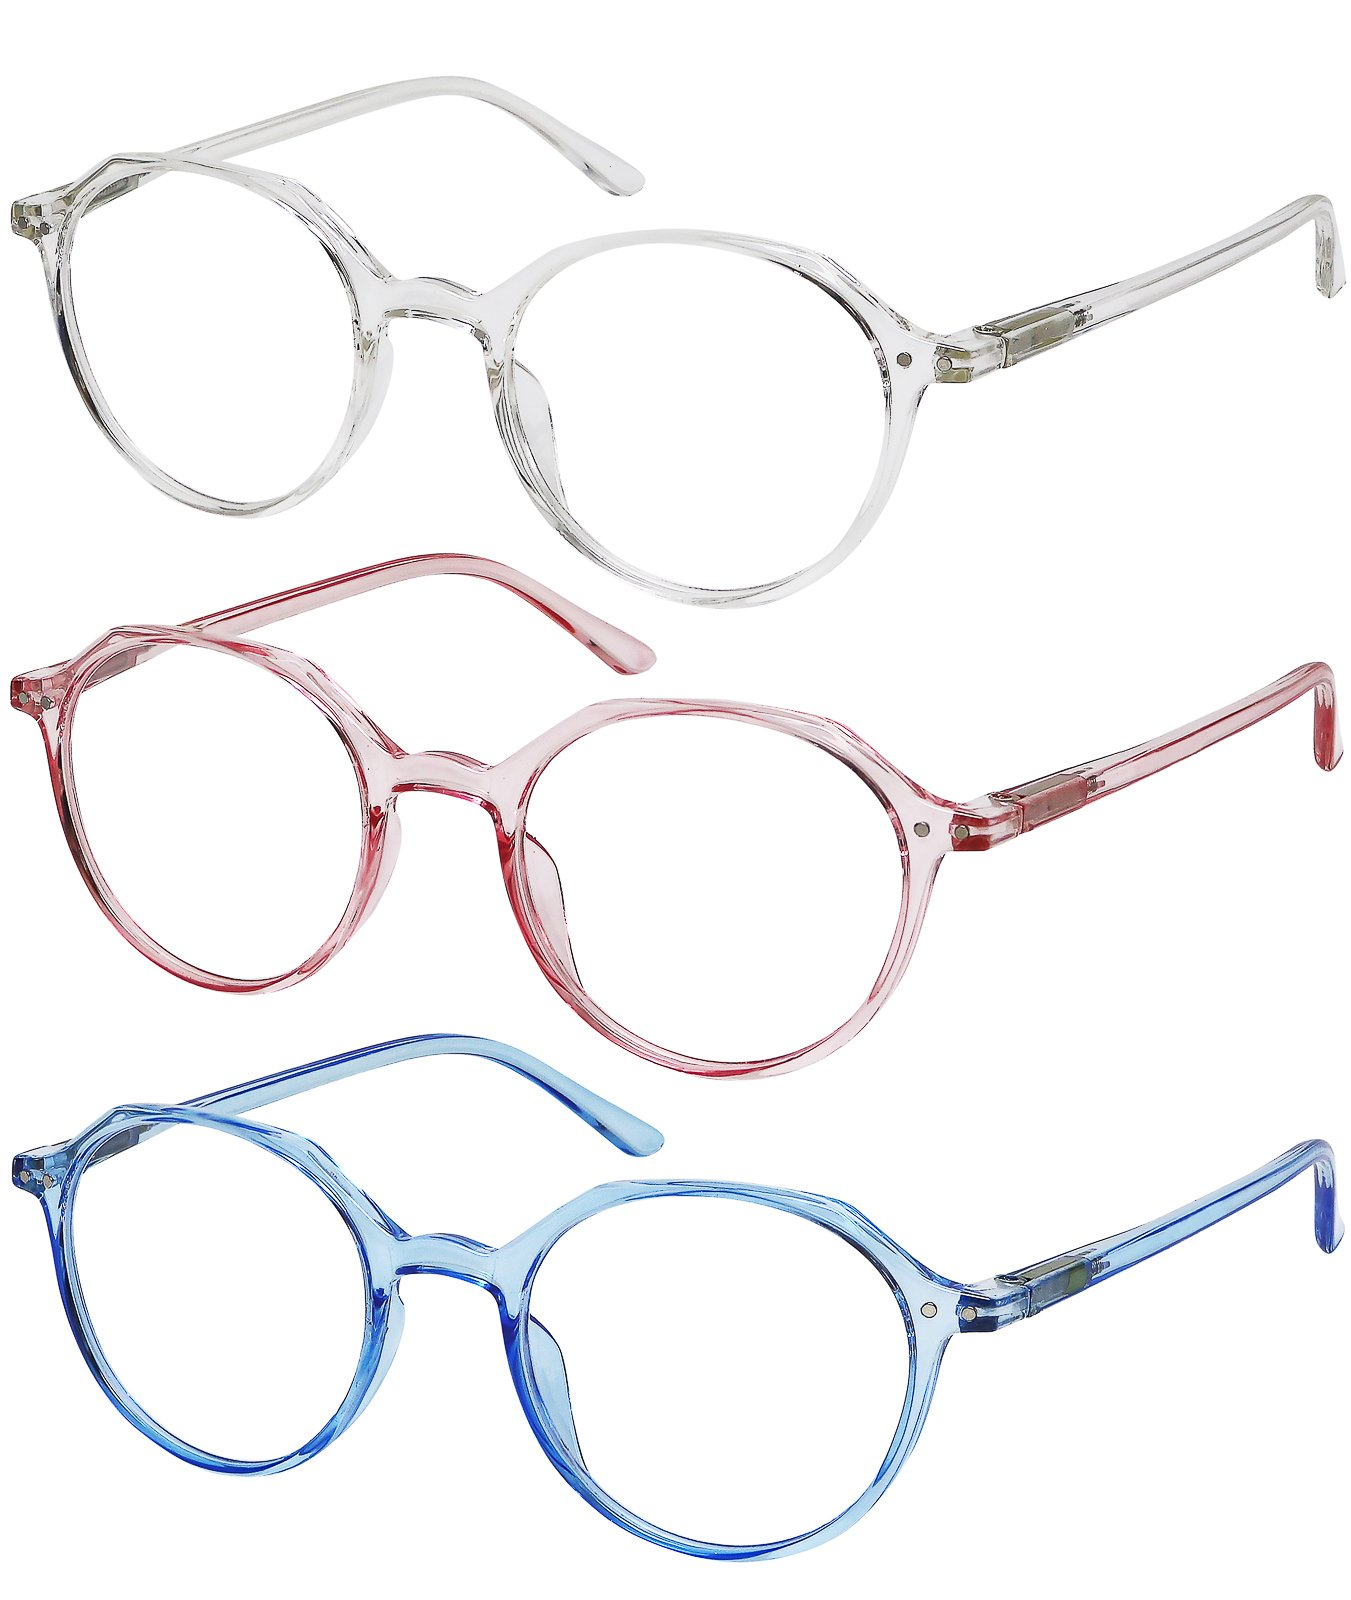 Reading Glasses 3 Pack Womens Fashion Readers Set of Crystal, Clear Pink, and Clear Blue +3.5 by Success Eyewear